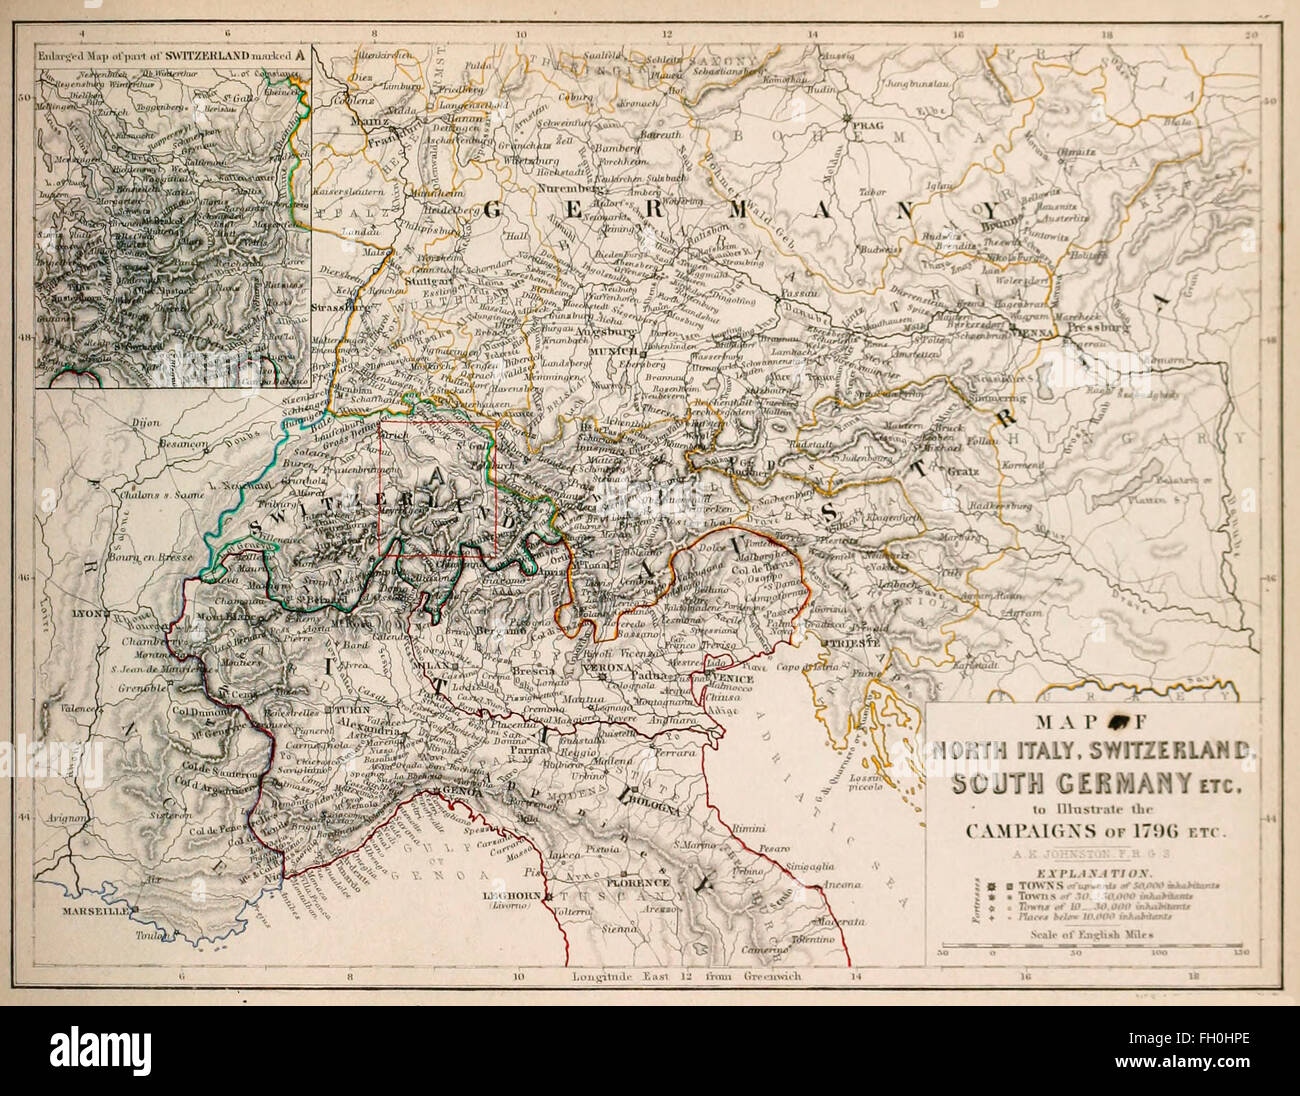 Map of north italy switzerland south germany etc to illustrate map of north italy switzerland south germany etc to illustrate the campaigns of 1796 gumiabroncs Gallery